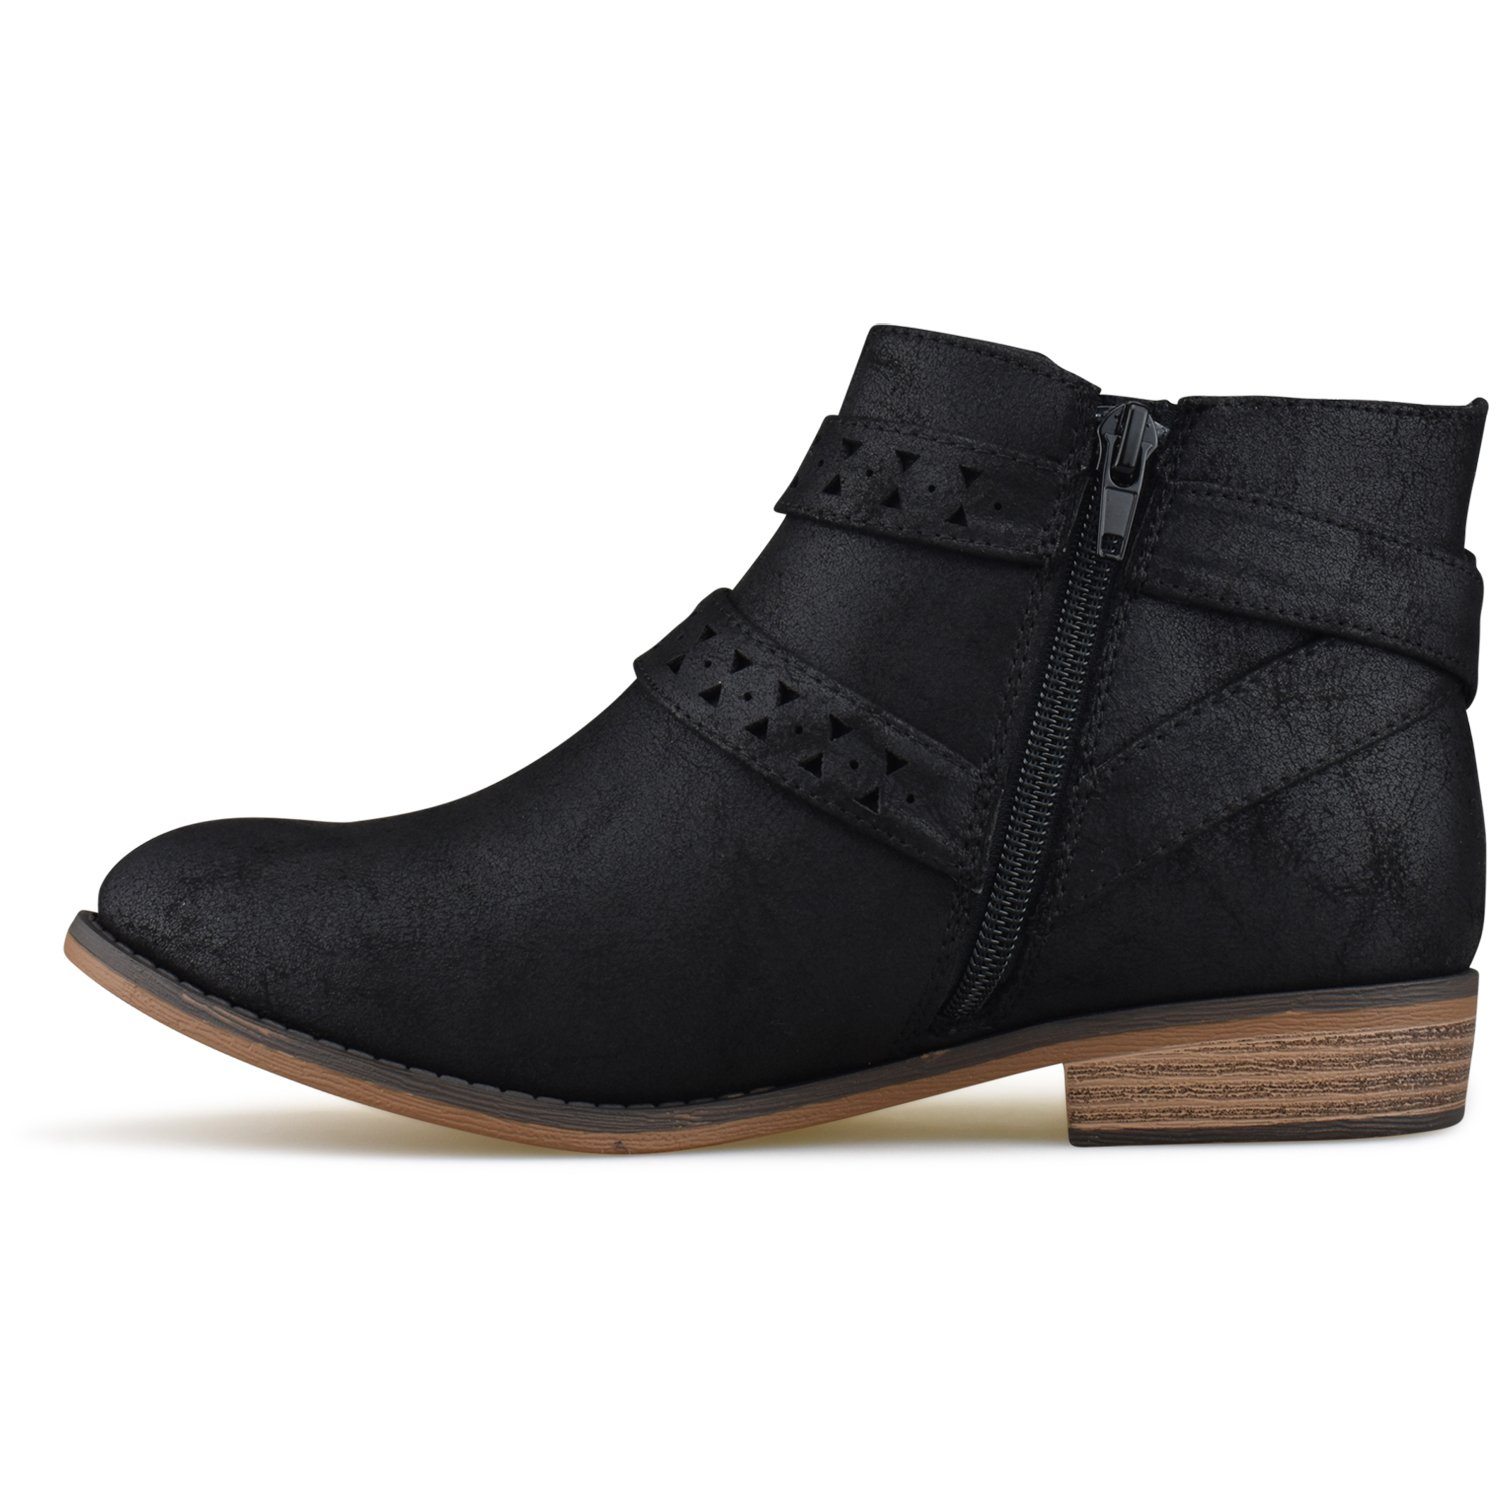 Premier Standard Womens Strappy Buckle Closed Toe Bootie Low Heel Casual Comfortable Walking Boot